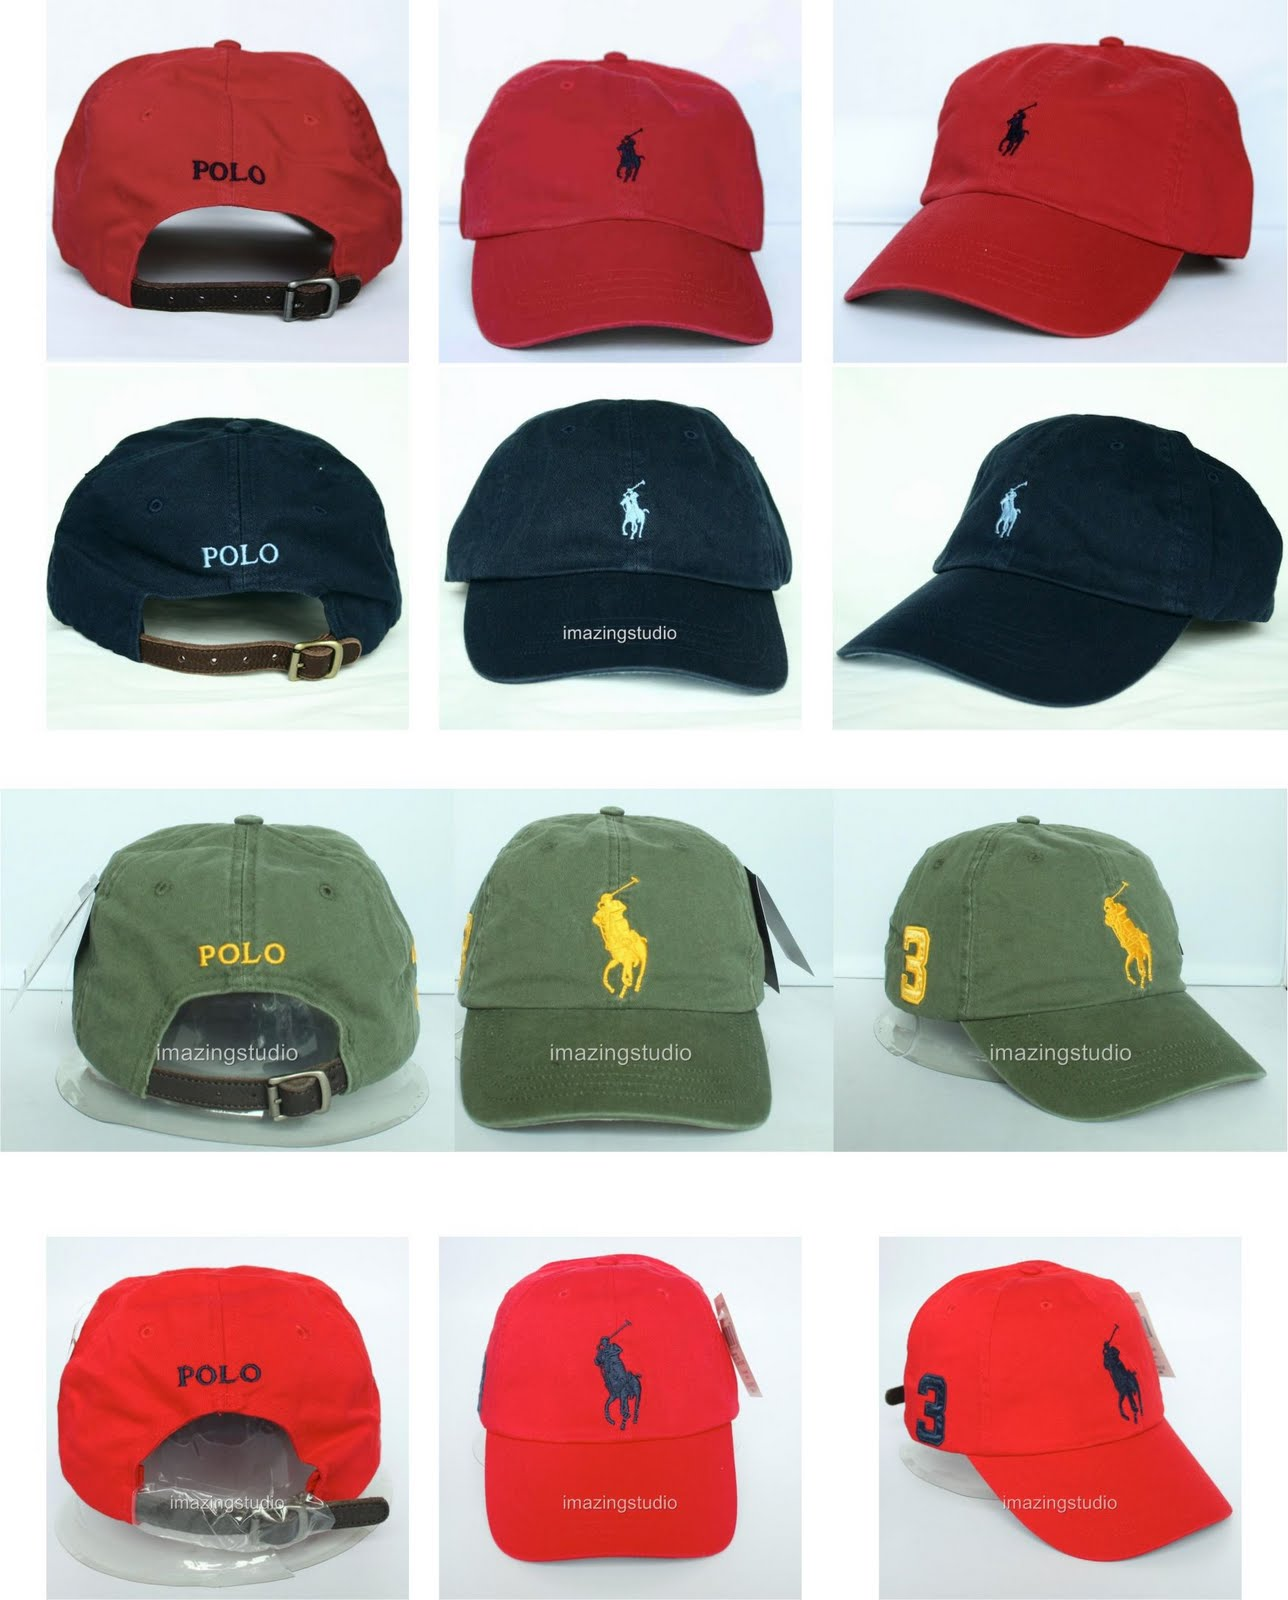 Bonés Ralph Lauren Masculinos. 1ª fileira  Vermelho Small Pony   2ª  fileira  Preto Small Pony   3ª fileira  Verde Big Pony   4ª fileira   Vermelho Big Pony 6ec52aa32a3